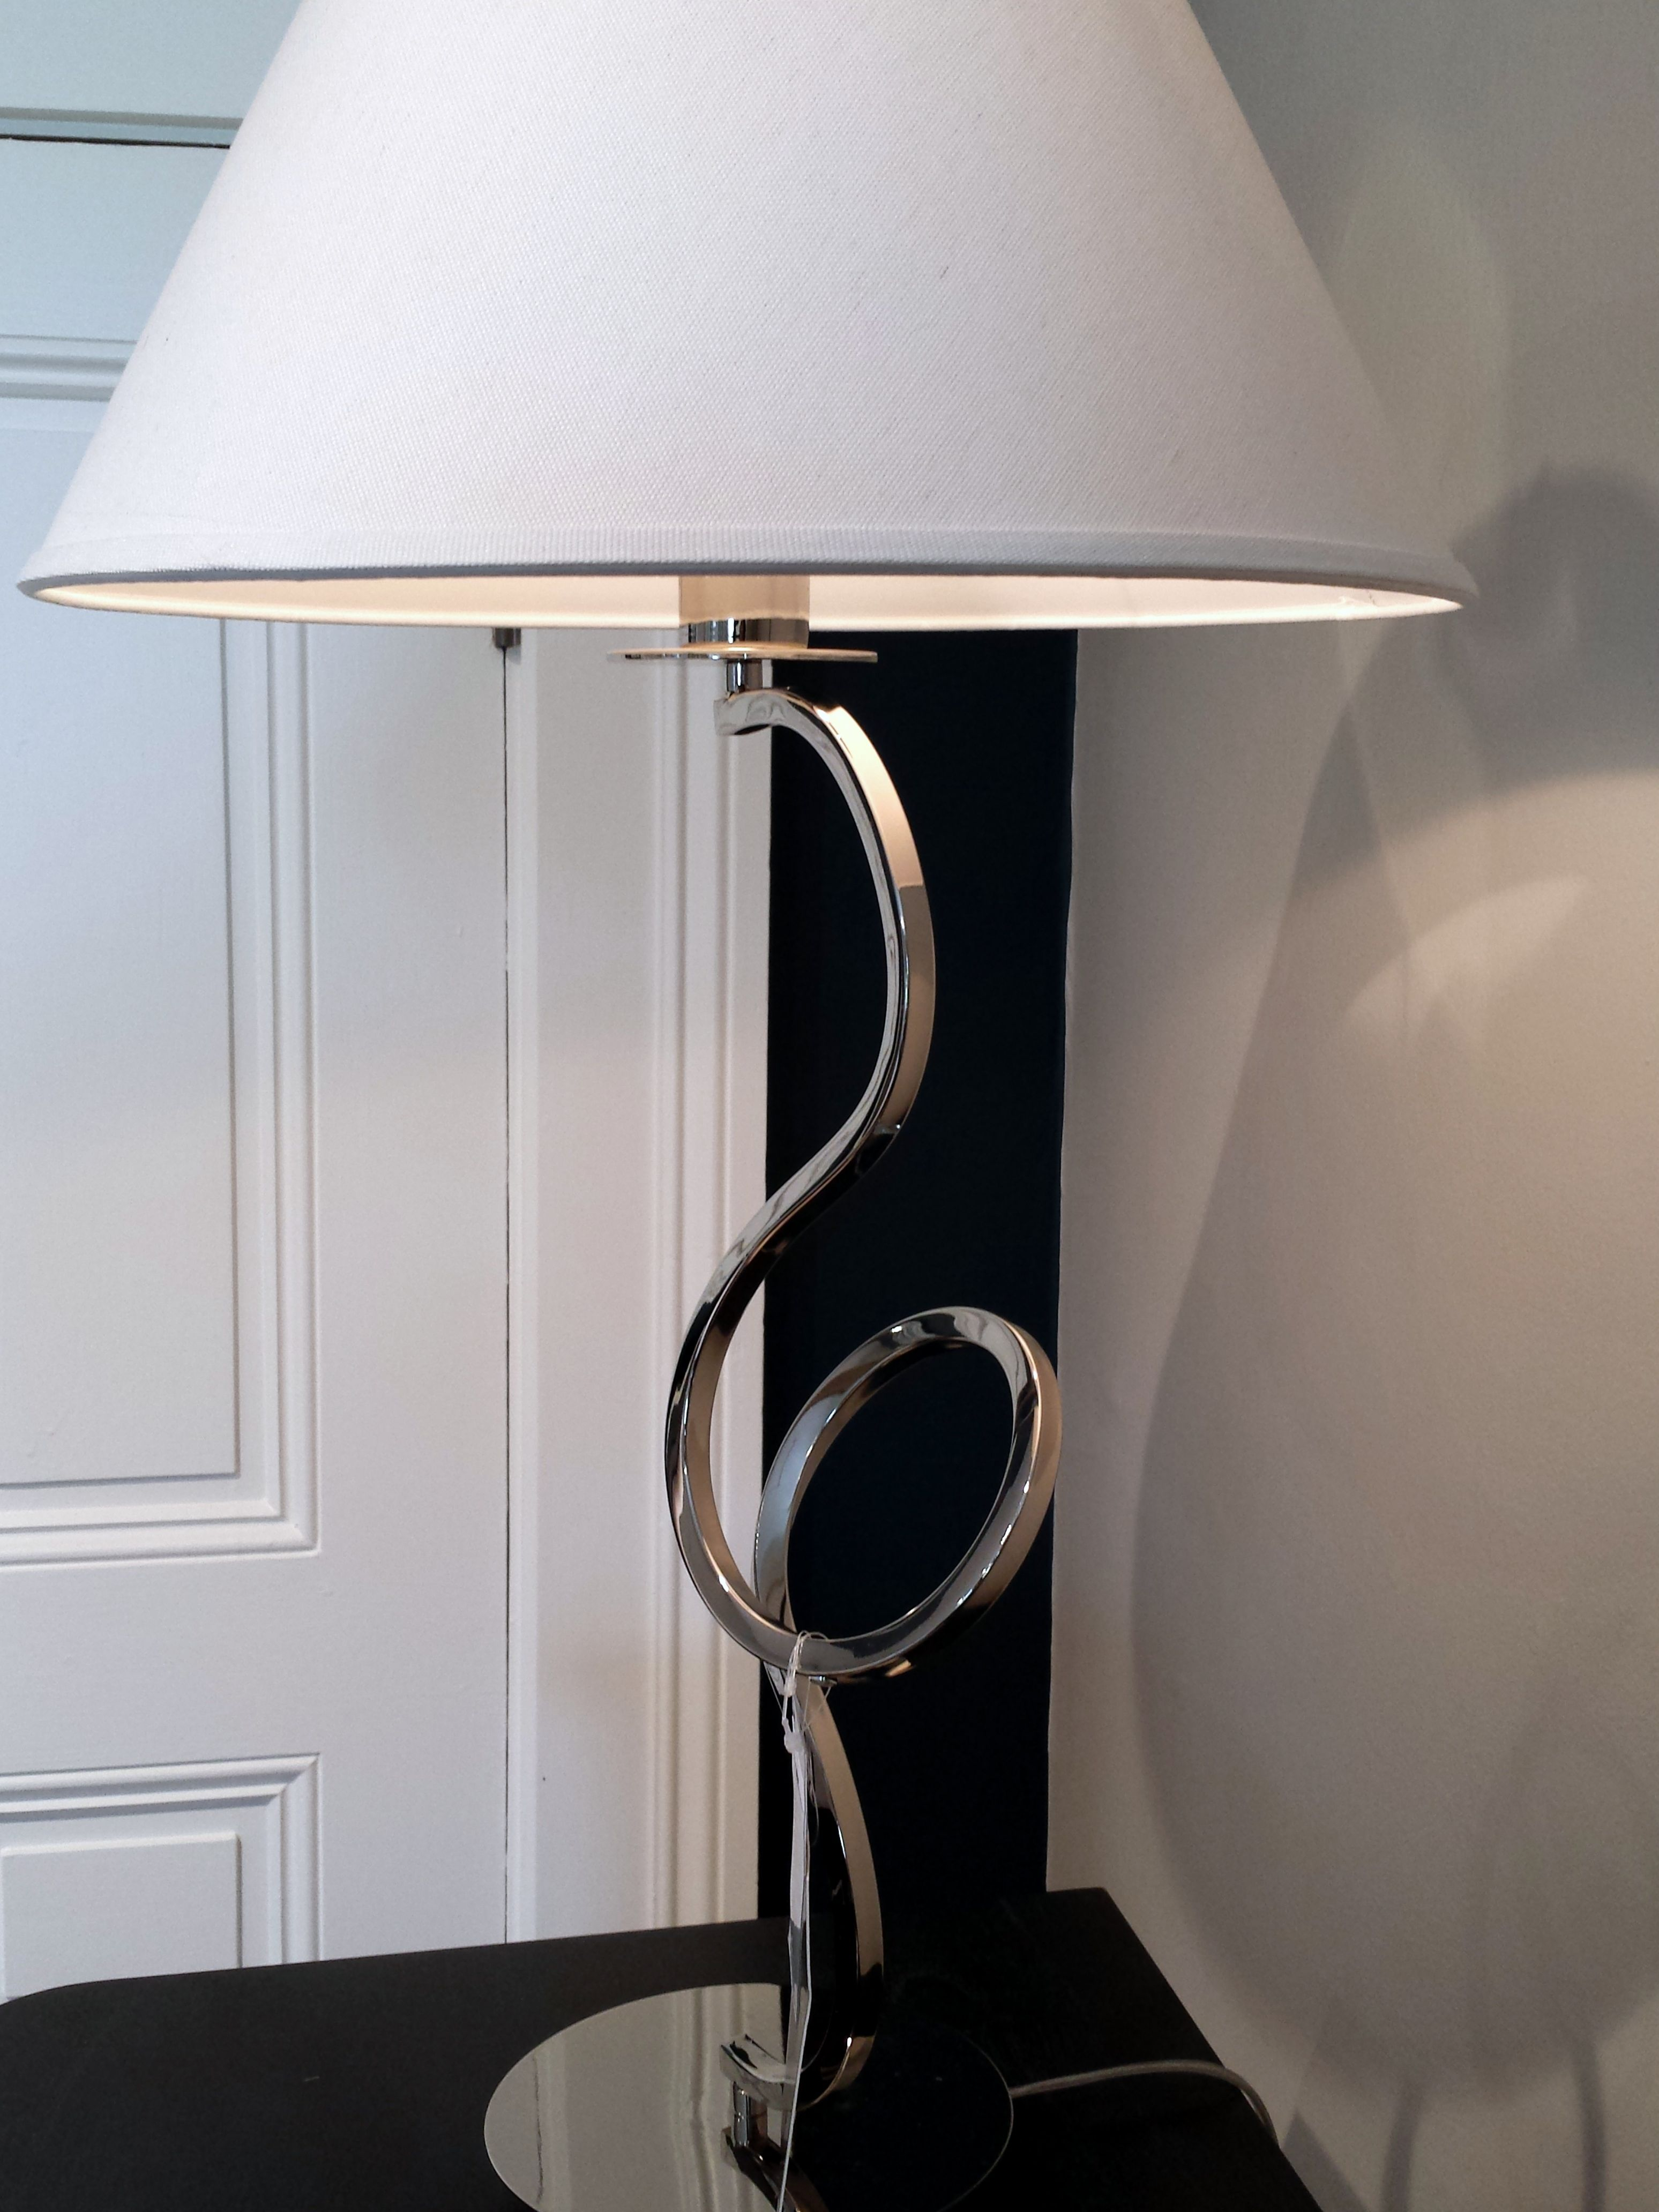 Curly Q Lamp - Available and on display at Routzahns Way